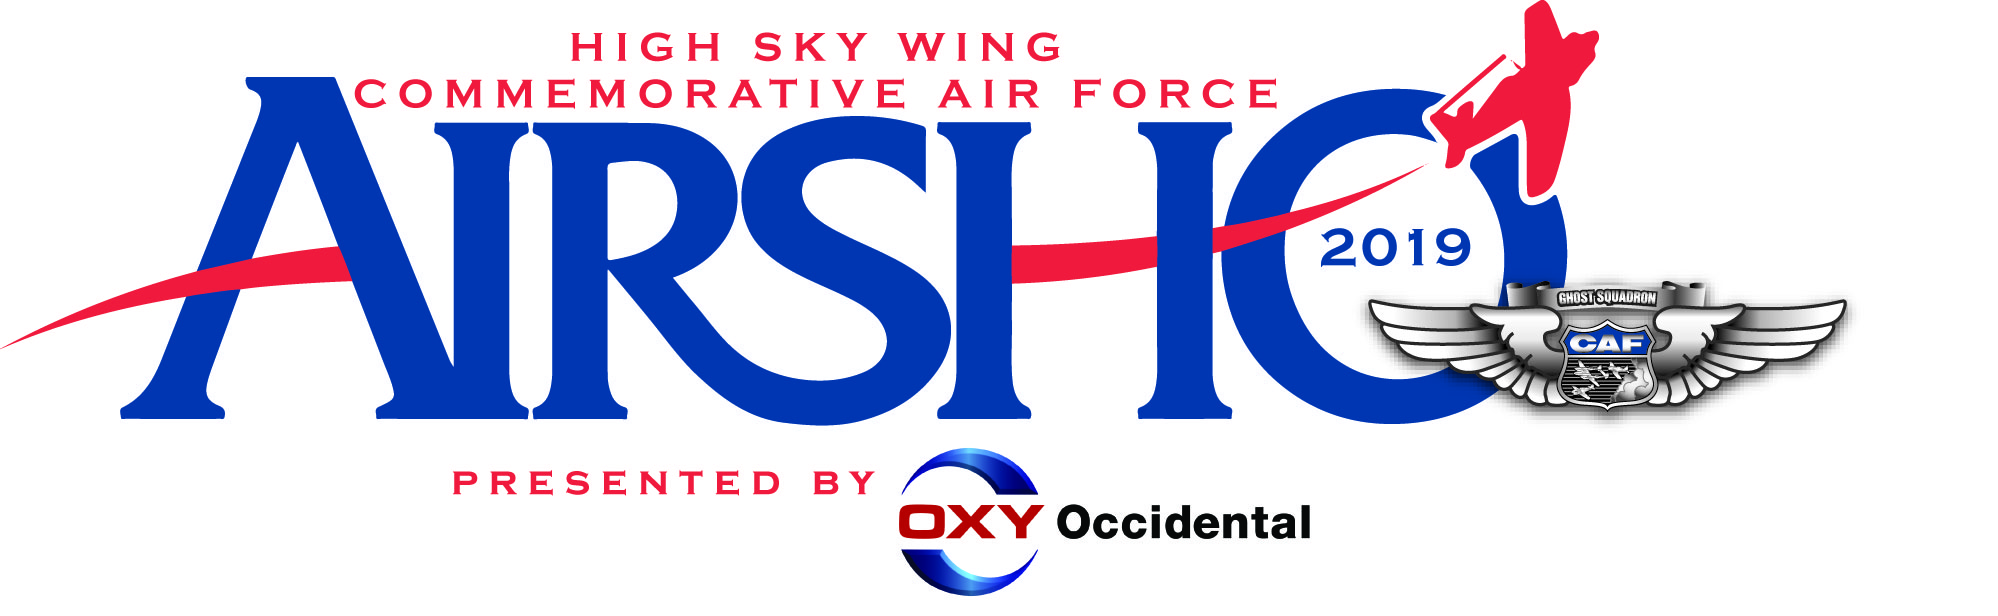 AIRSHO 2019 Presented by Oxy 2019 blue 1